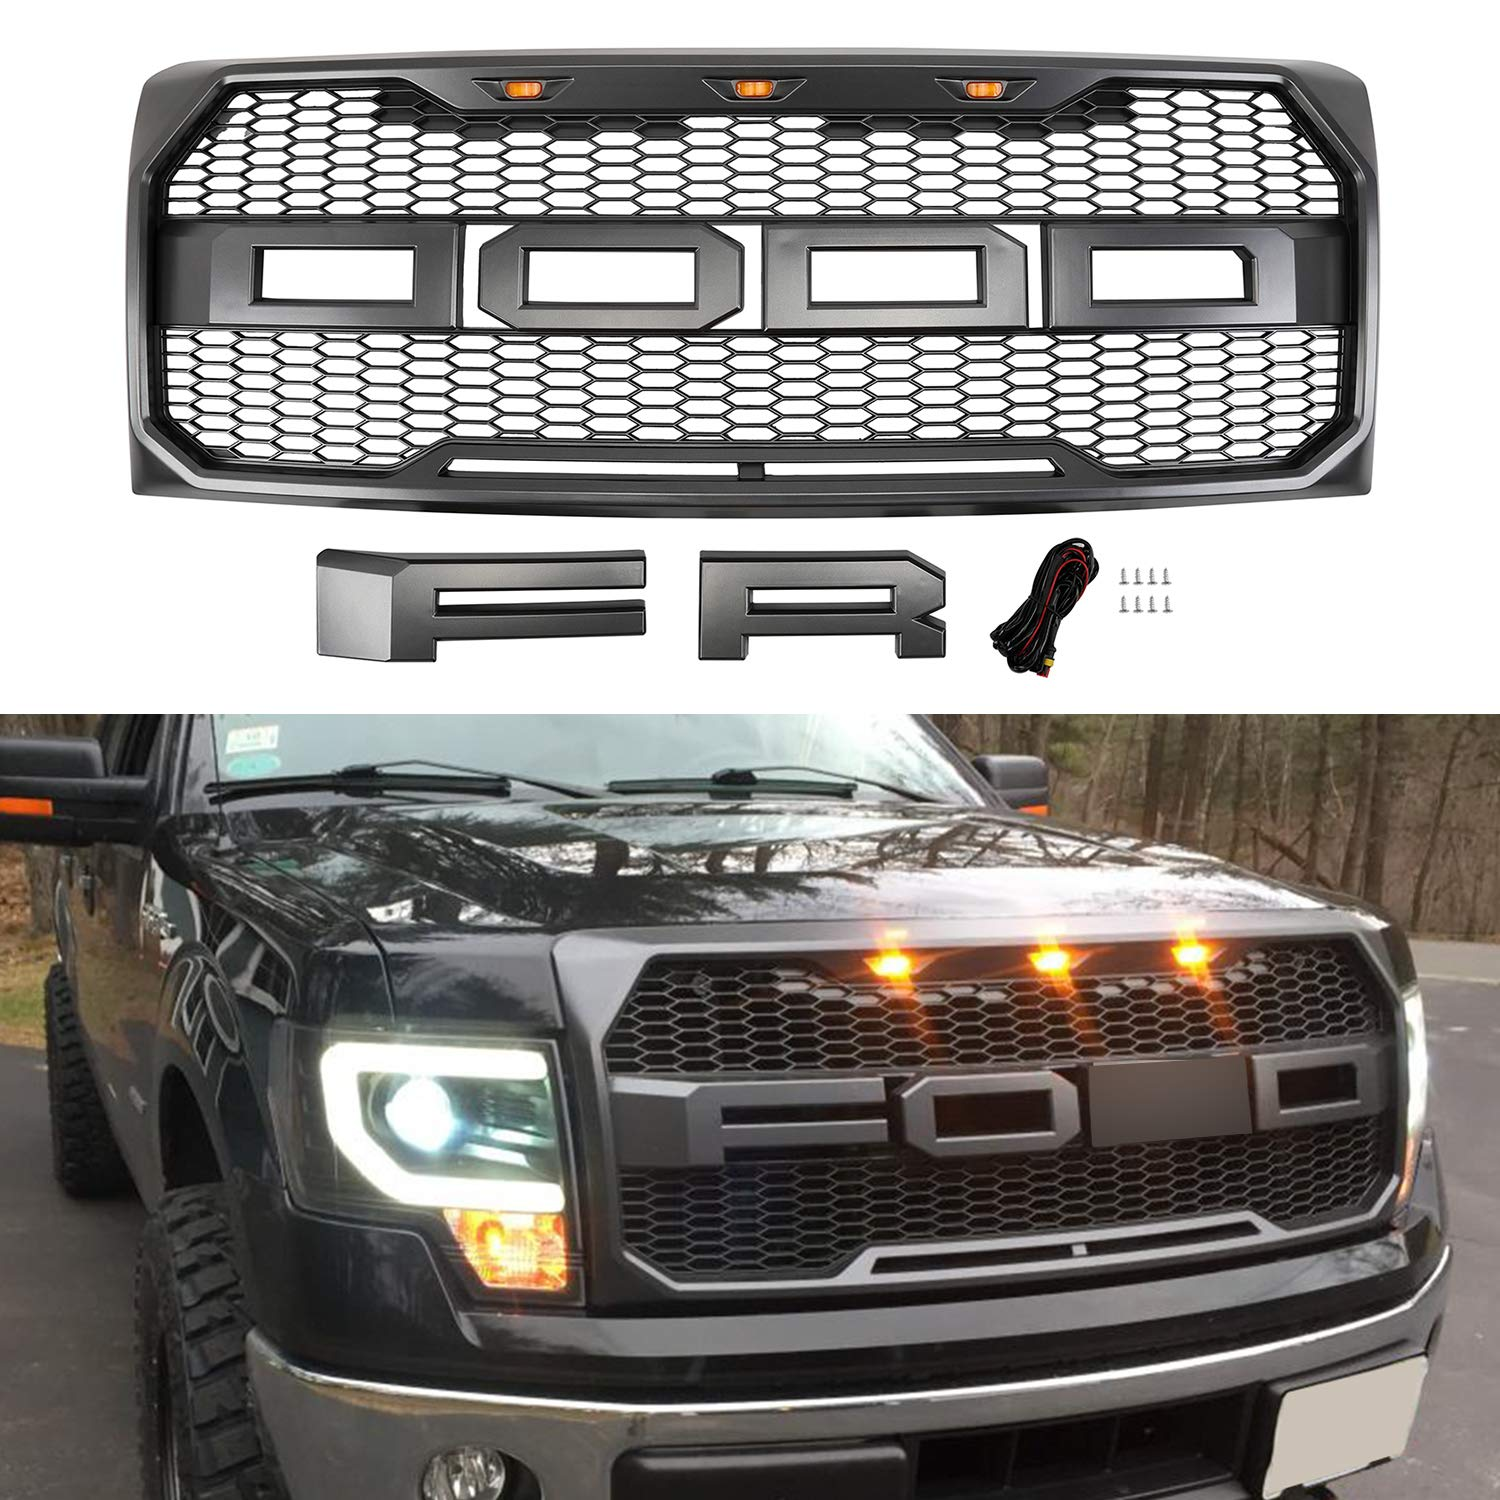 Seven Sparta Front Grill For F150 2009 2014 Raptor Style Grill For Ford With Amber Lights F R Letters Gray